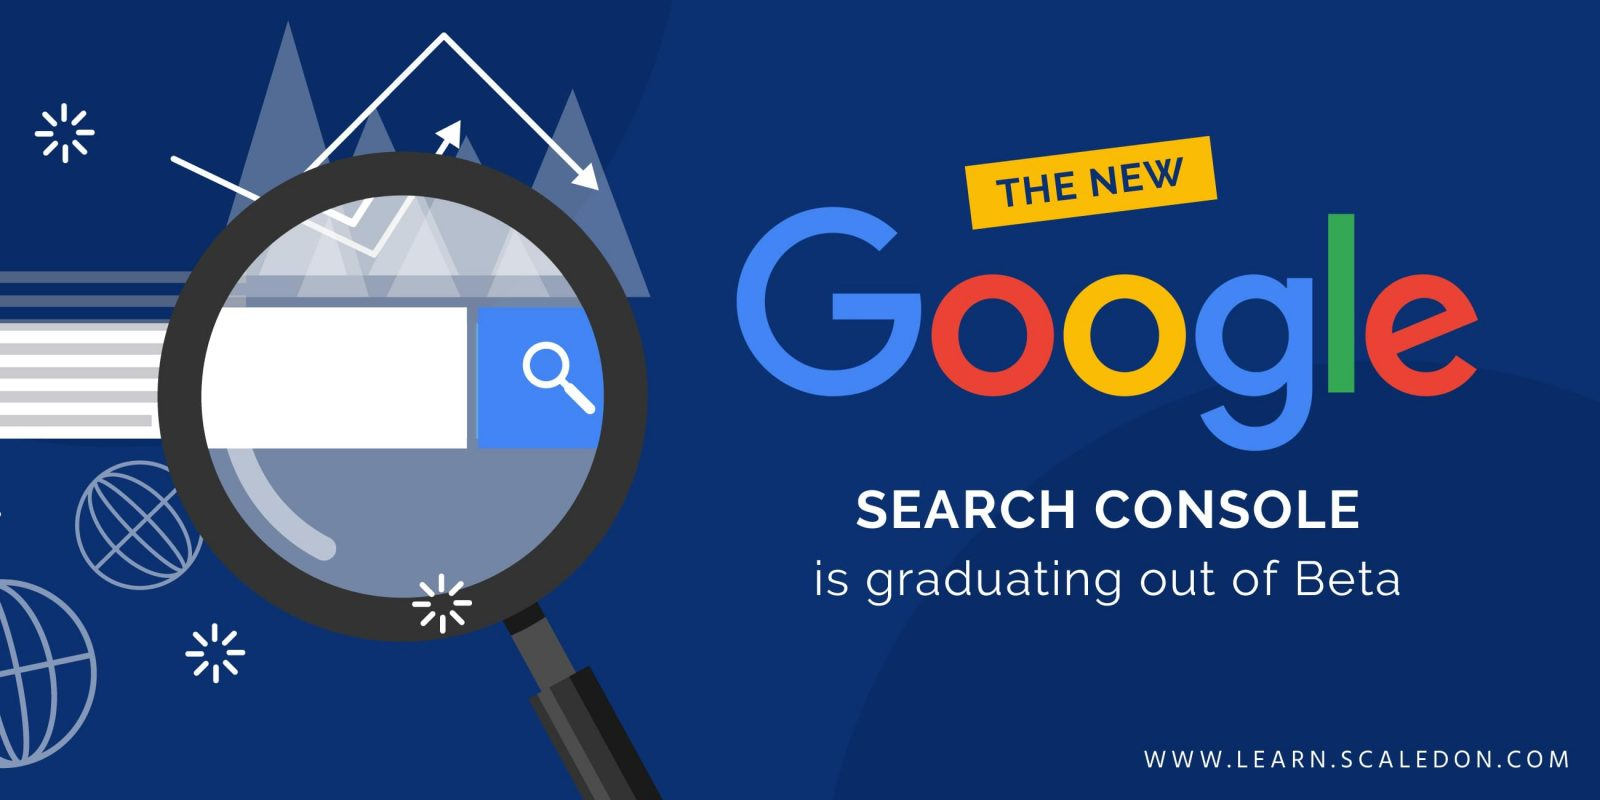 The new Search Console is graduating out of Beta